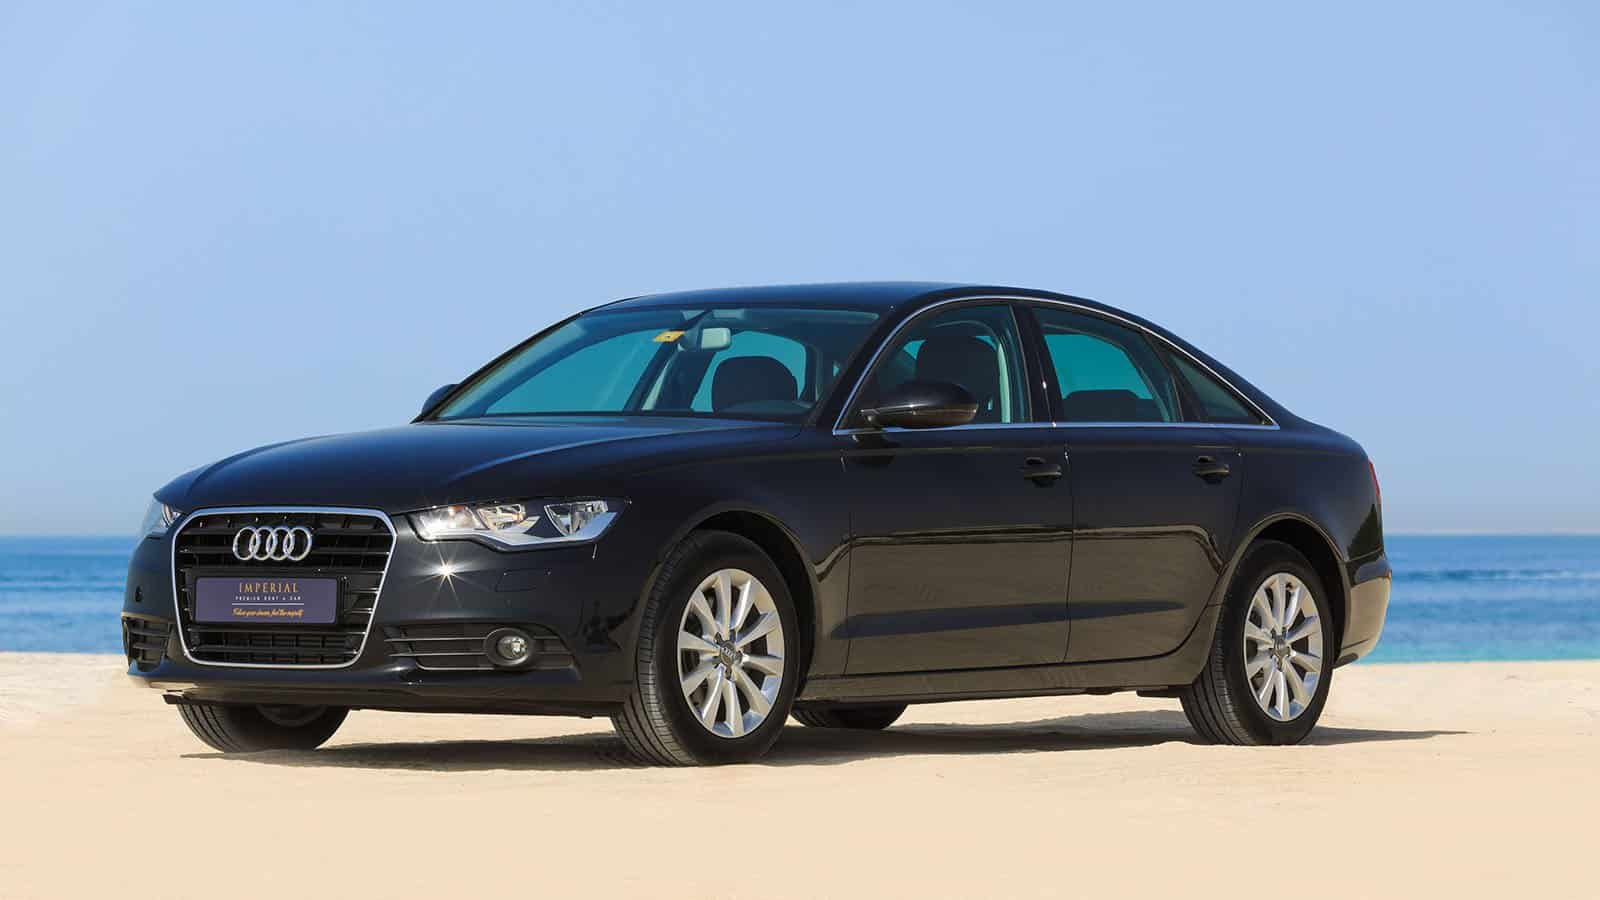 Audi A6 Dubai Car Rental